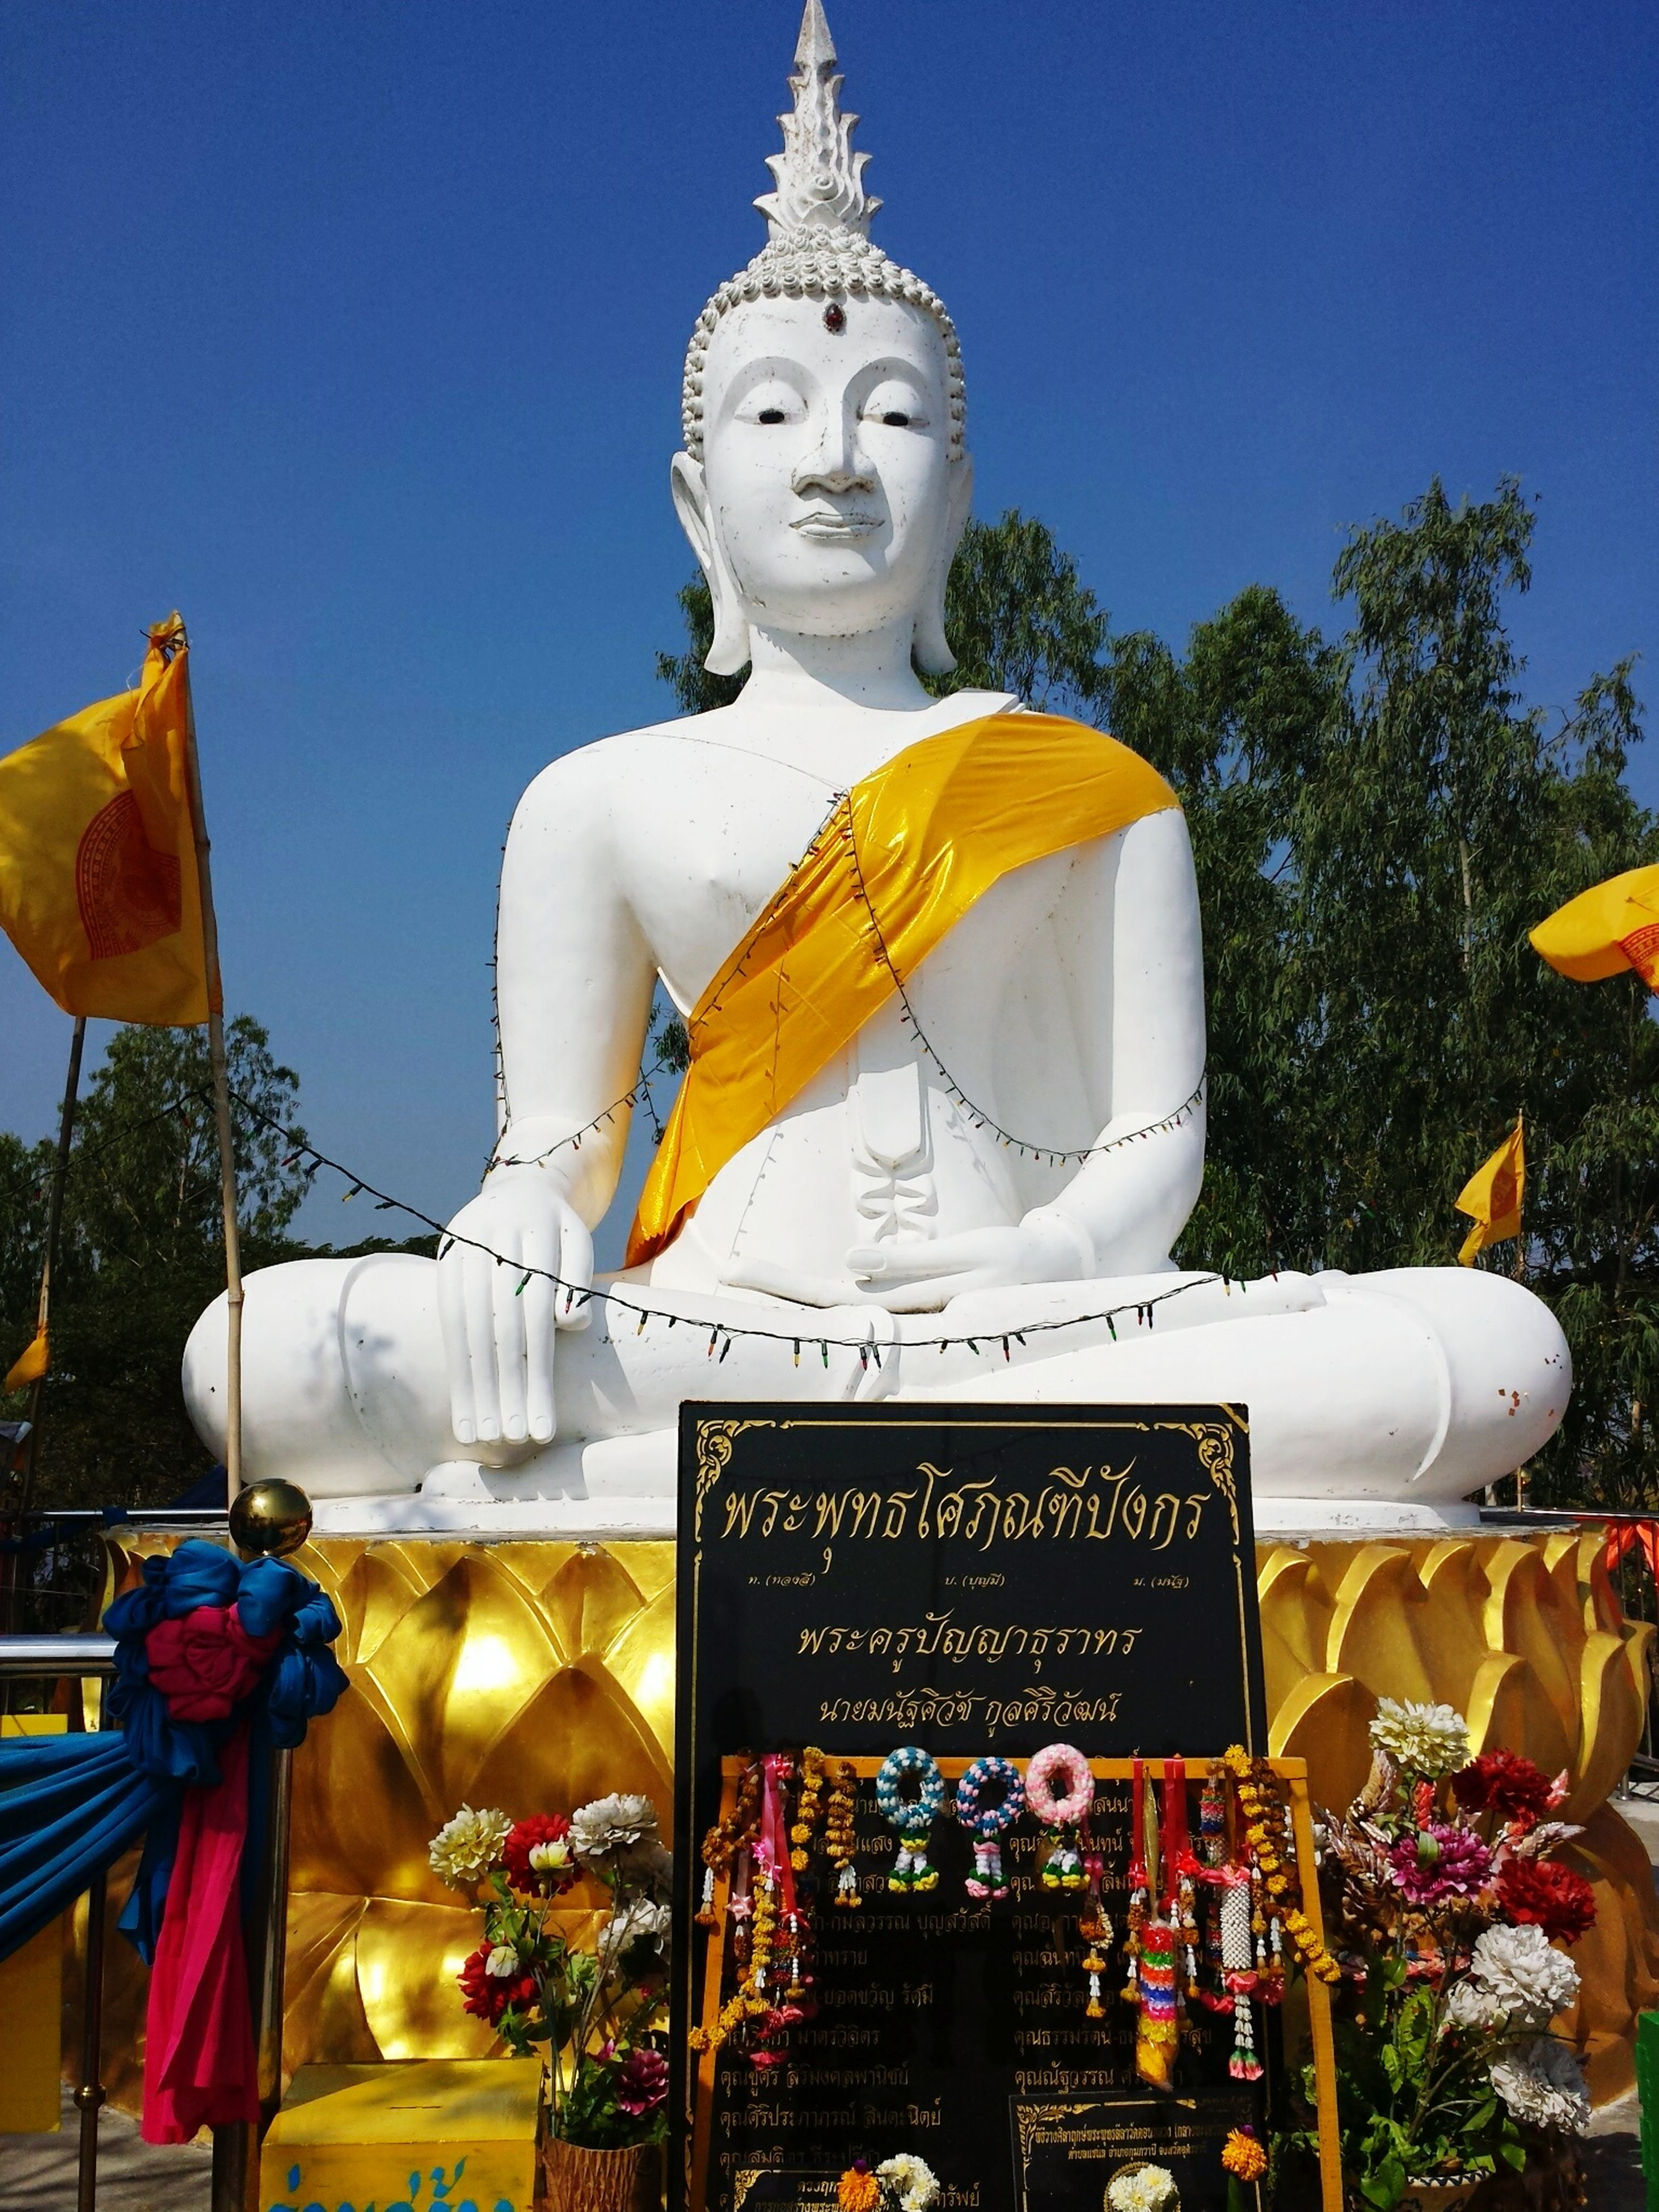 human representation, statue, sculpture, art and craft, art, creativity, religion, spirituality, buddha, animal representation, clear sky, text, carving - craft product, place of worship, yellow, craft, famous place